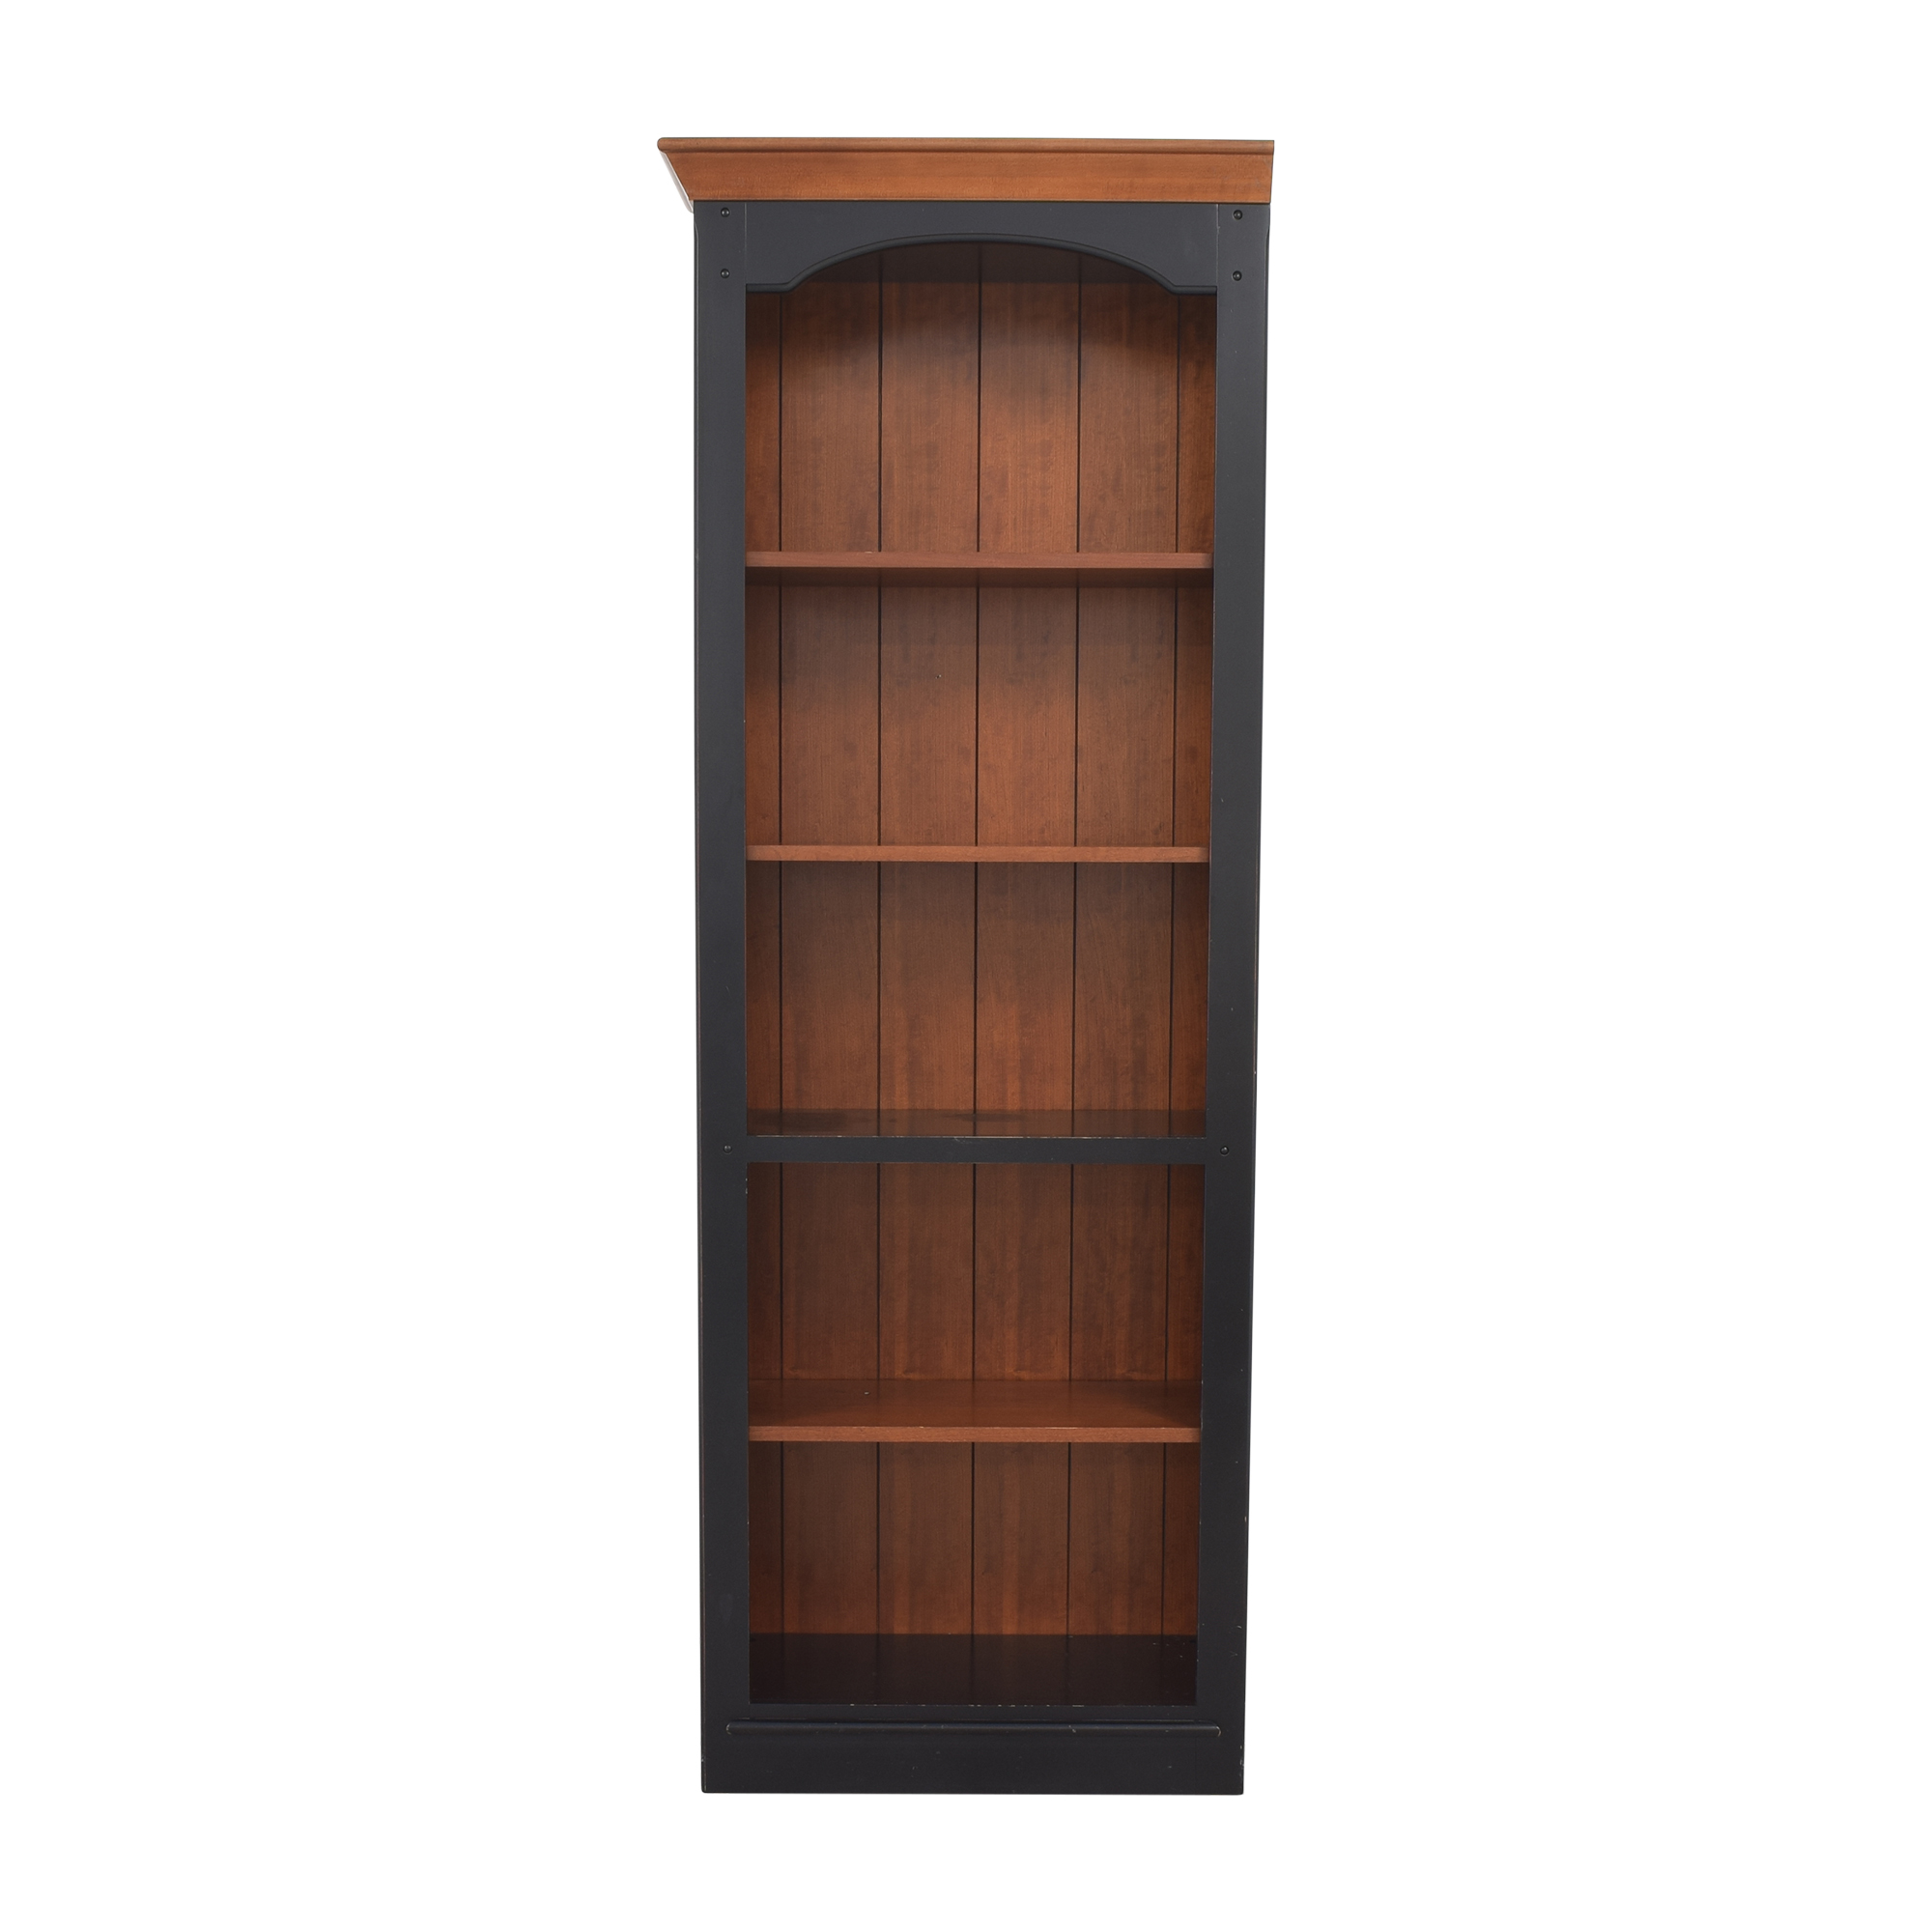 Stickley Furniture Book Shelf with Accent Top / Chairs